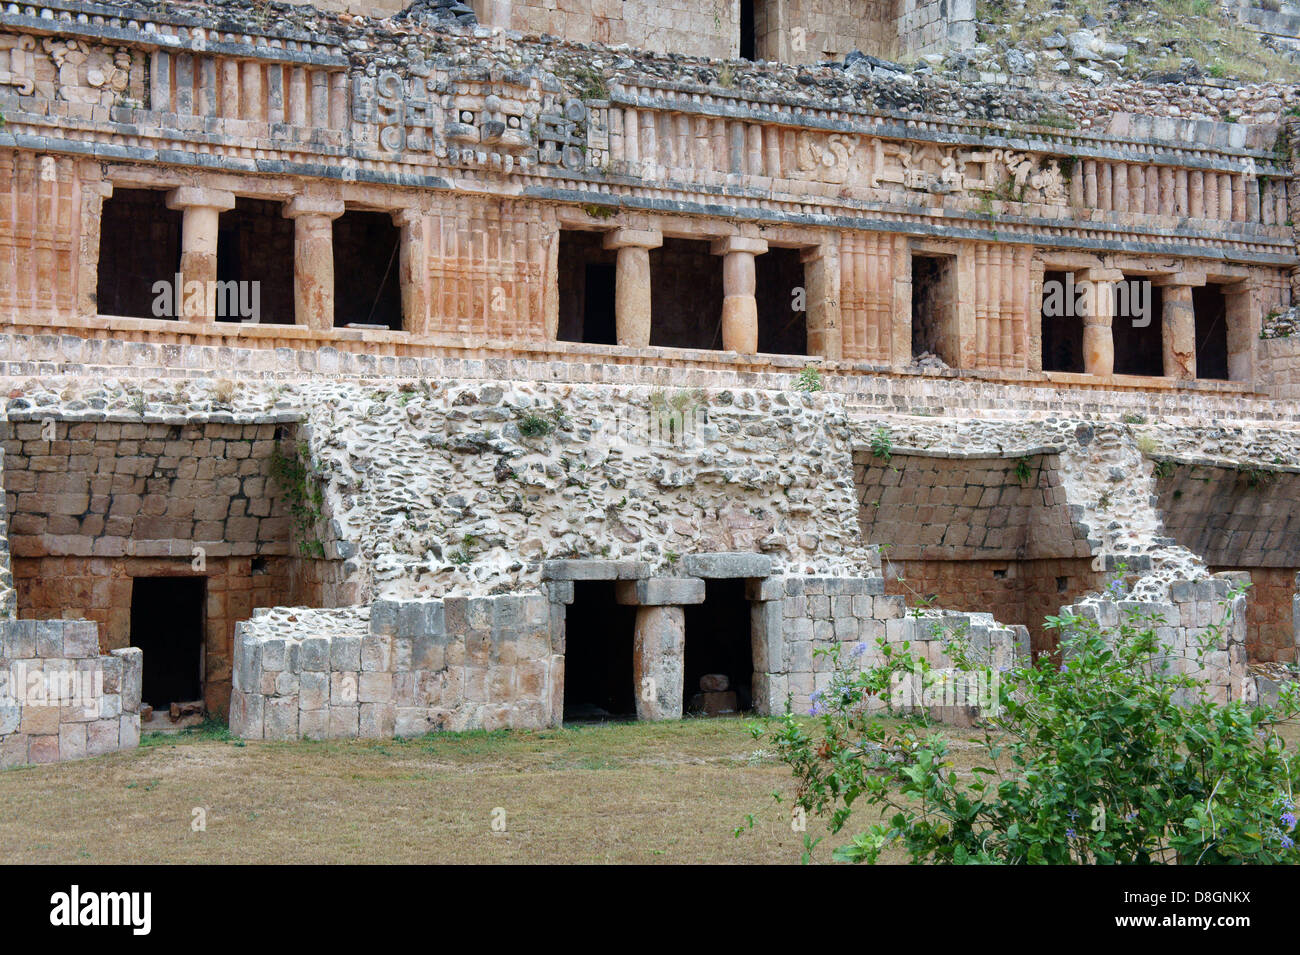 The Palace or El Palacio at the Mayan ruins of Sayil, Yucatan, Mexico Stock Photo